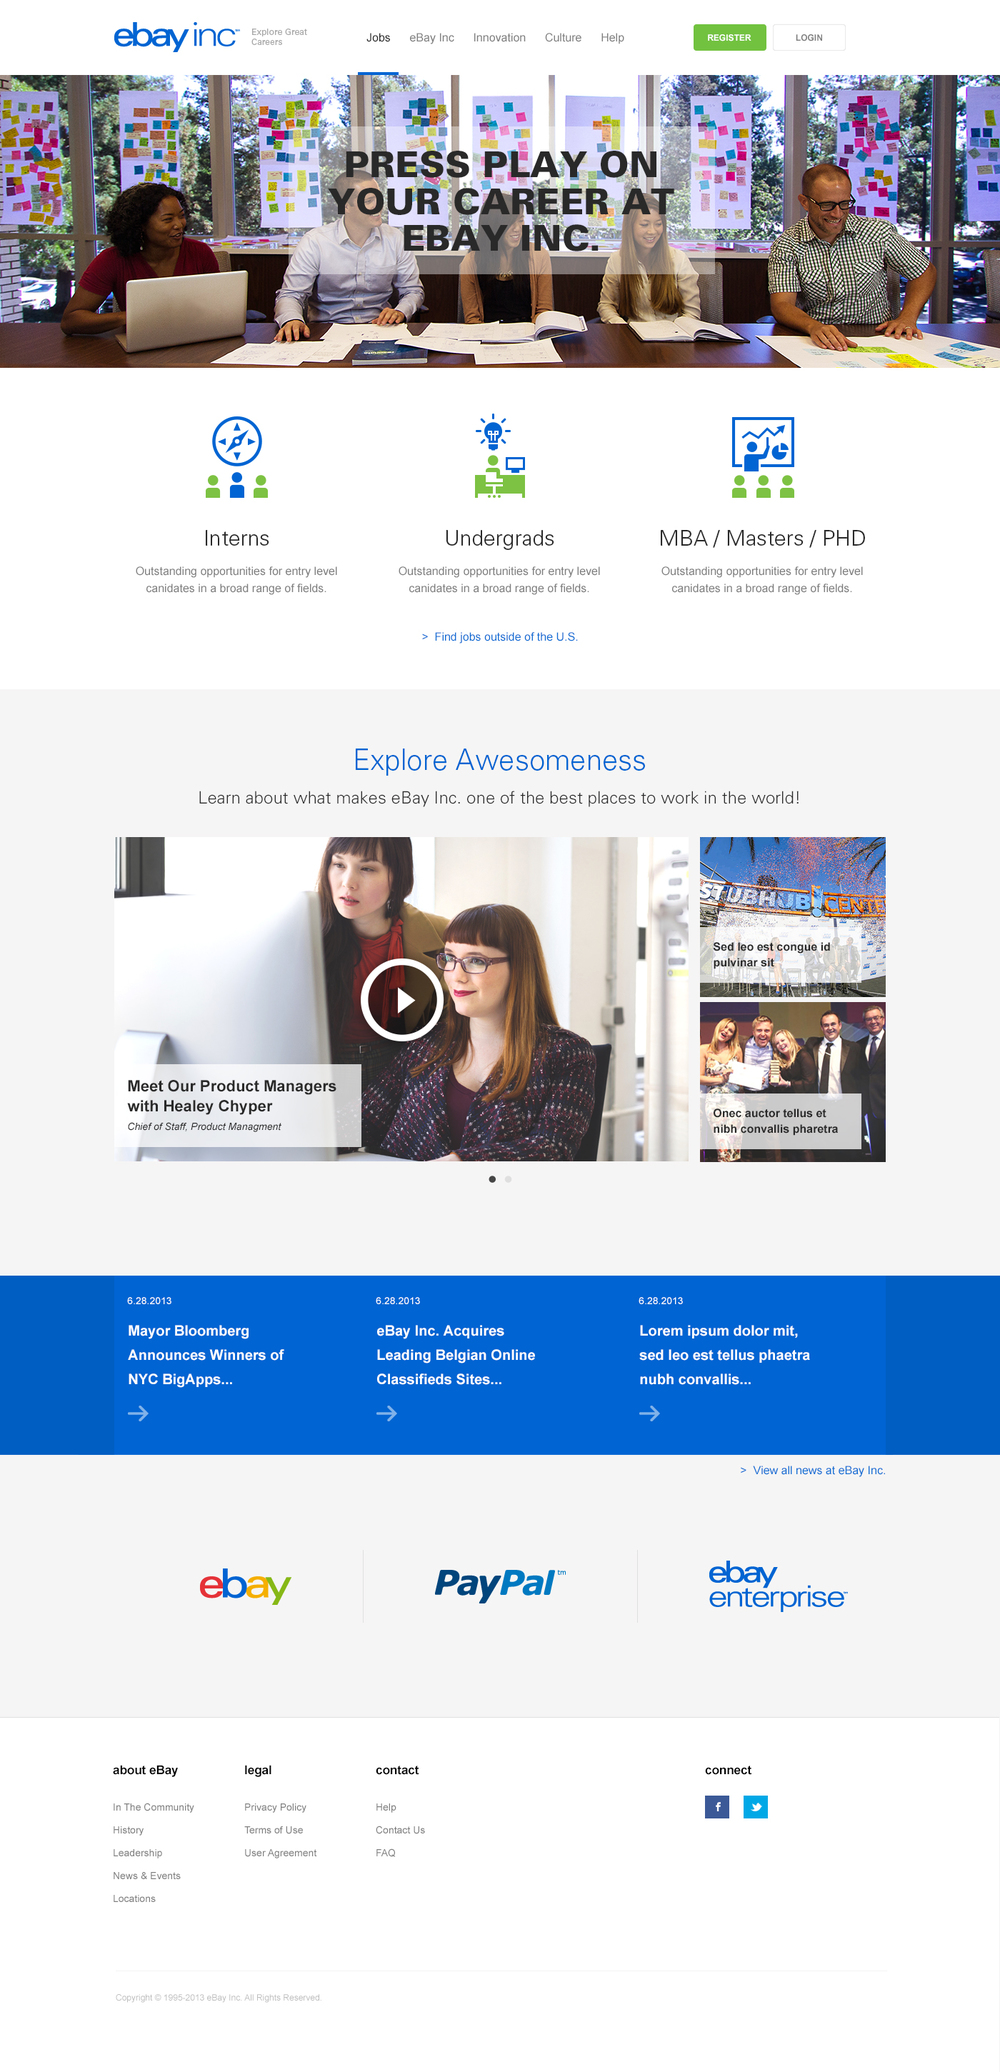 New home page: Personal elements like employee stories mixed with a clean, balanced layout and immersive content styling immediately impress upon the user the value of the eBay Inc. brands